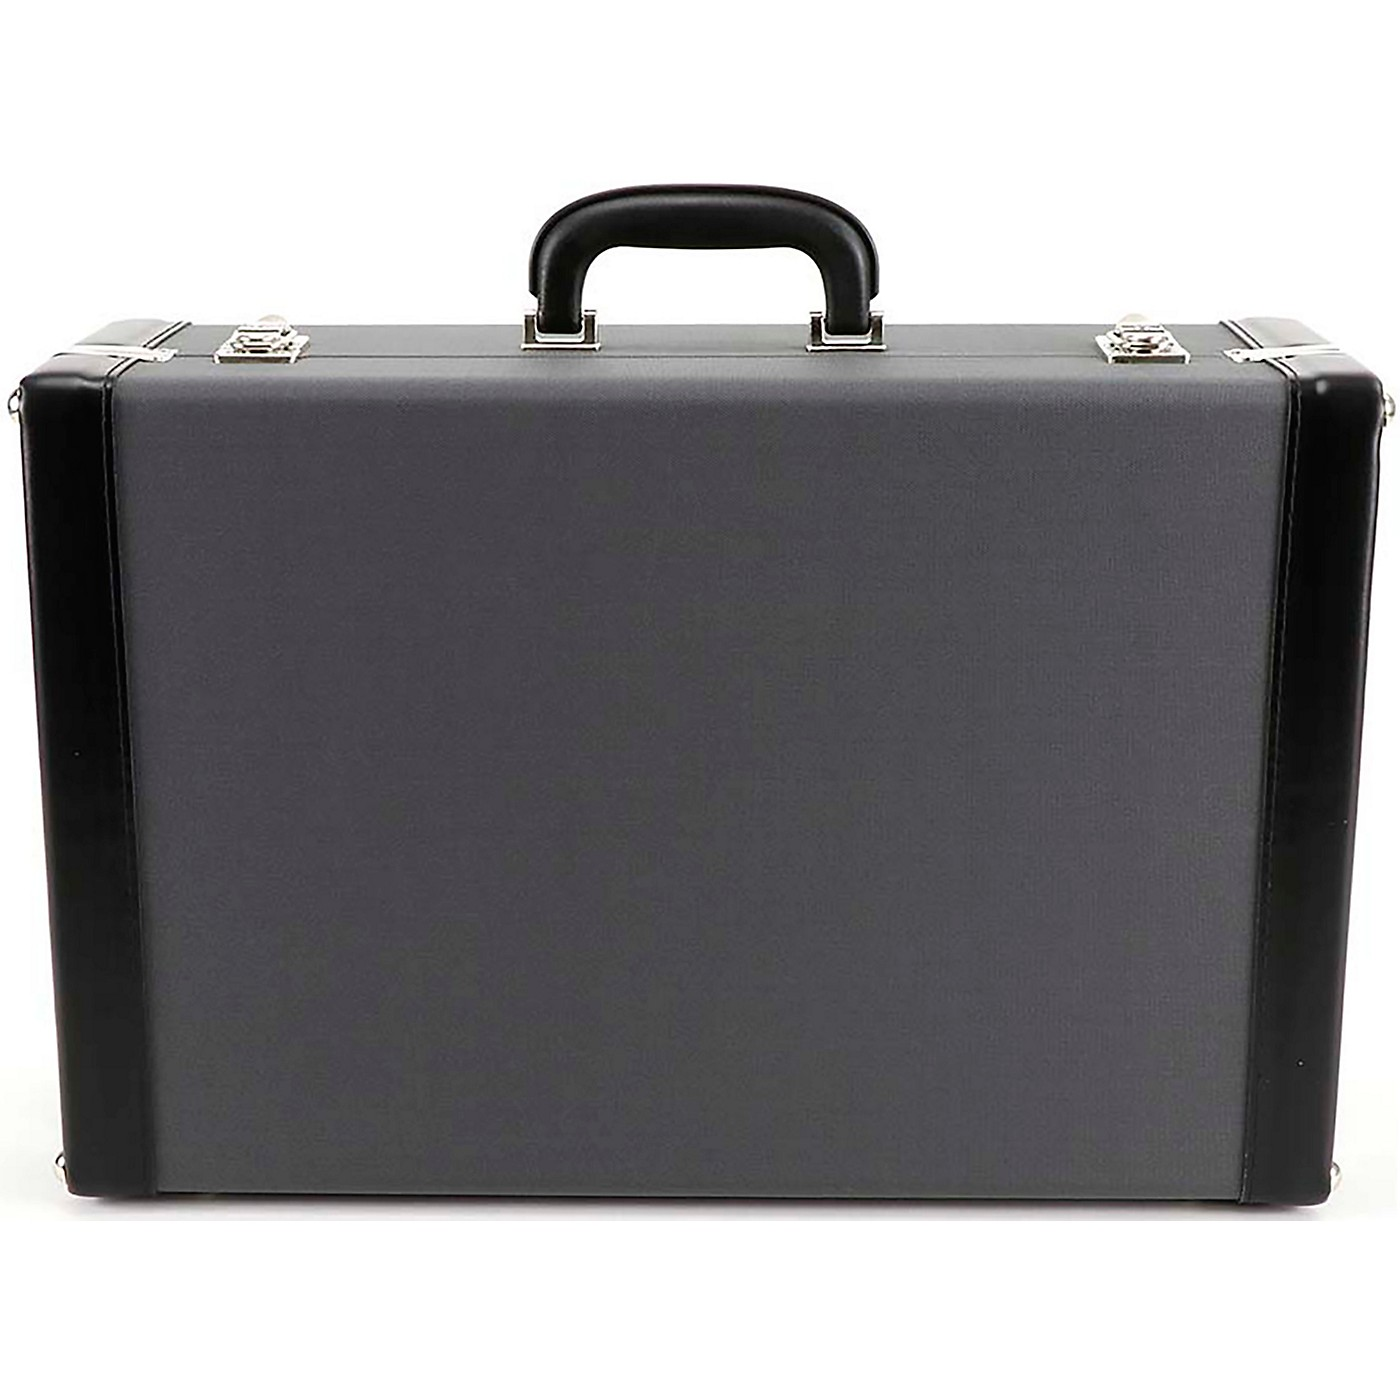 J. Winter JW 776 Deluxe Wood Case For 3 Trumpets thumbnail